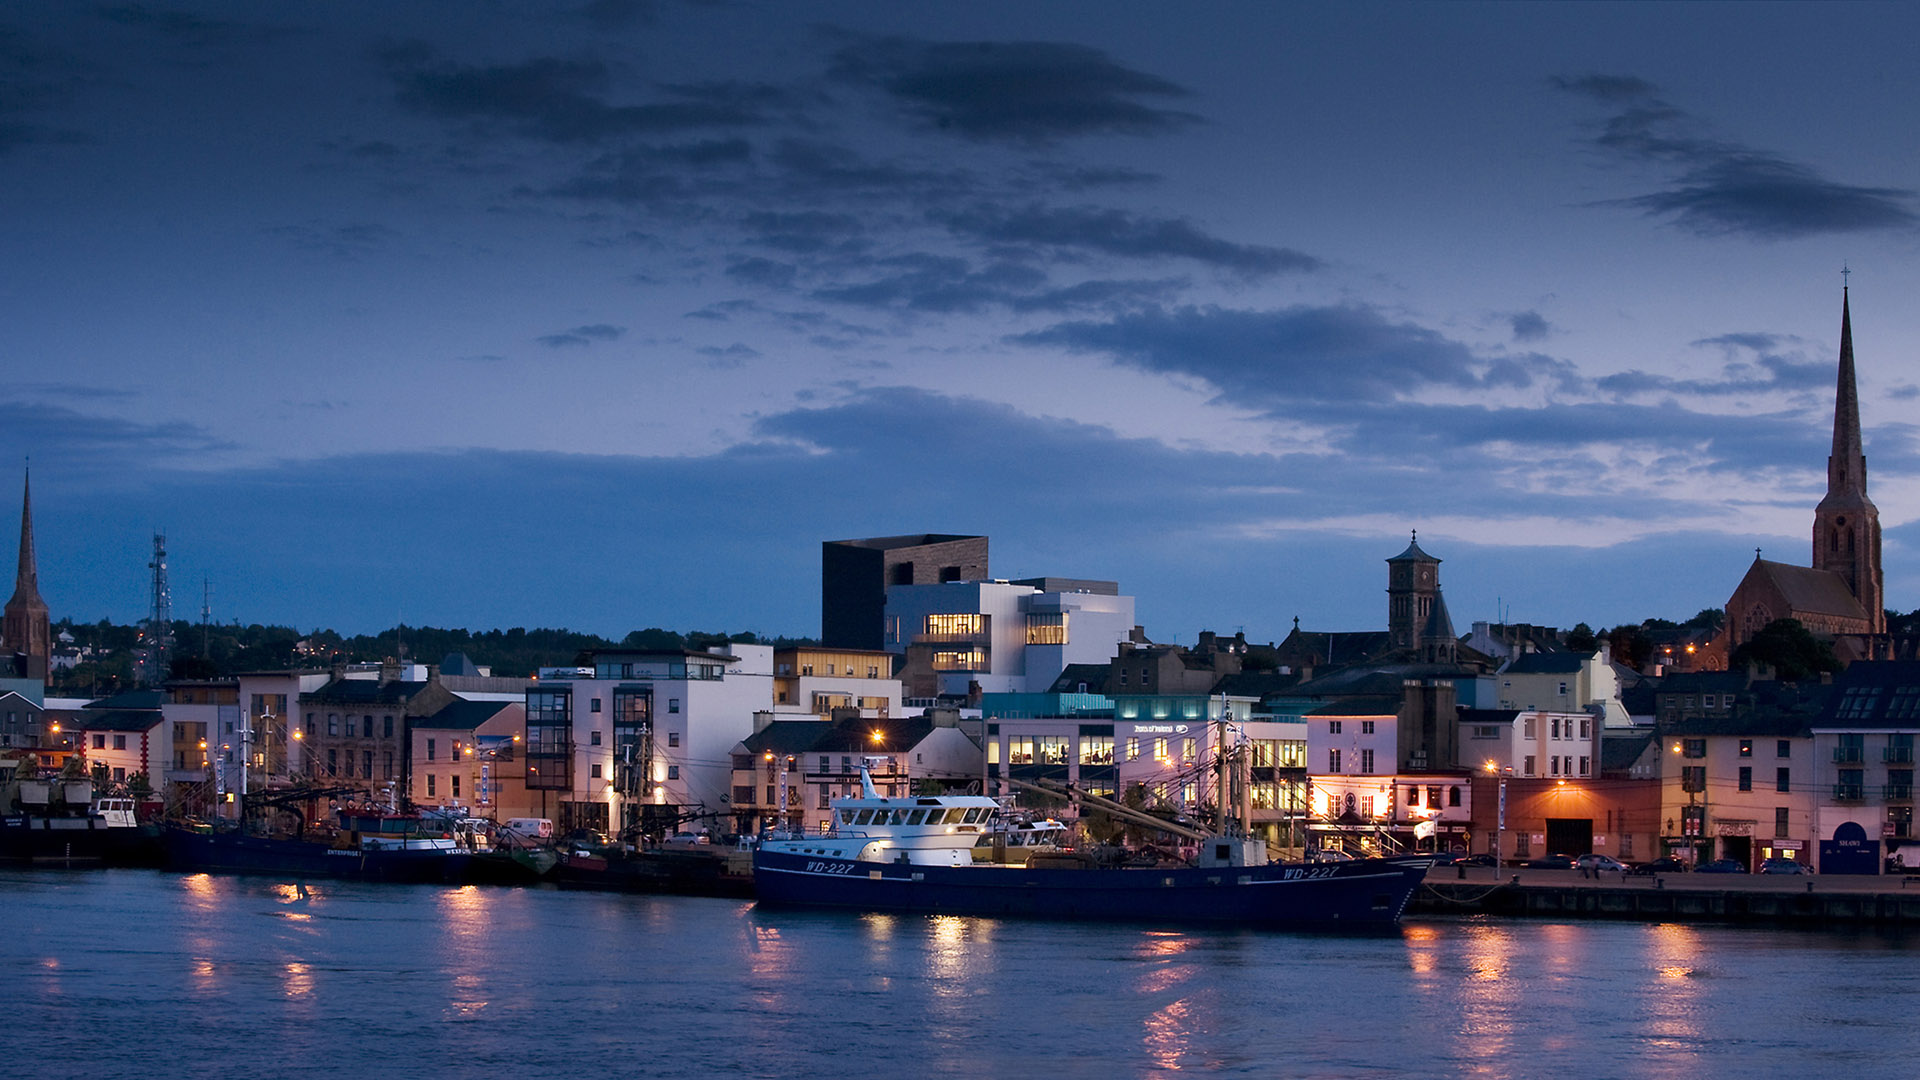 Night view of the National Opera House and waterfront viewed from across the River Slaney, Wexford Ireland. One of the great small opera houses of the world.